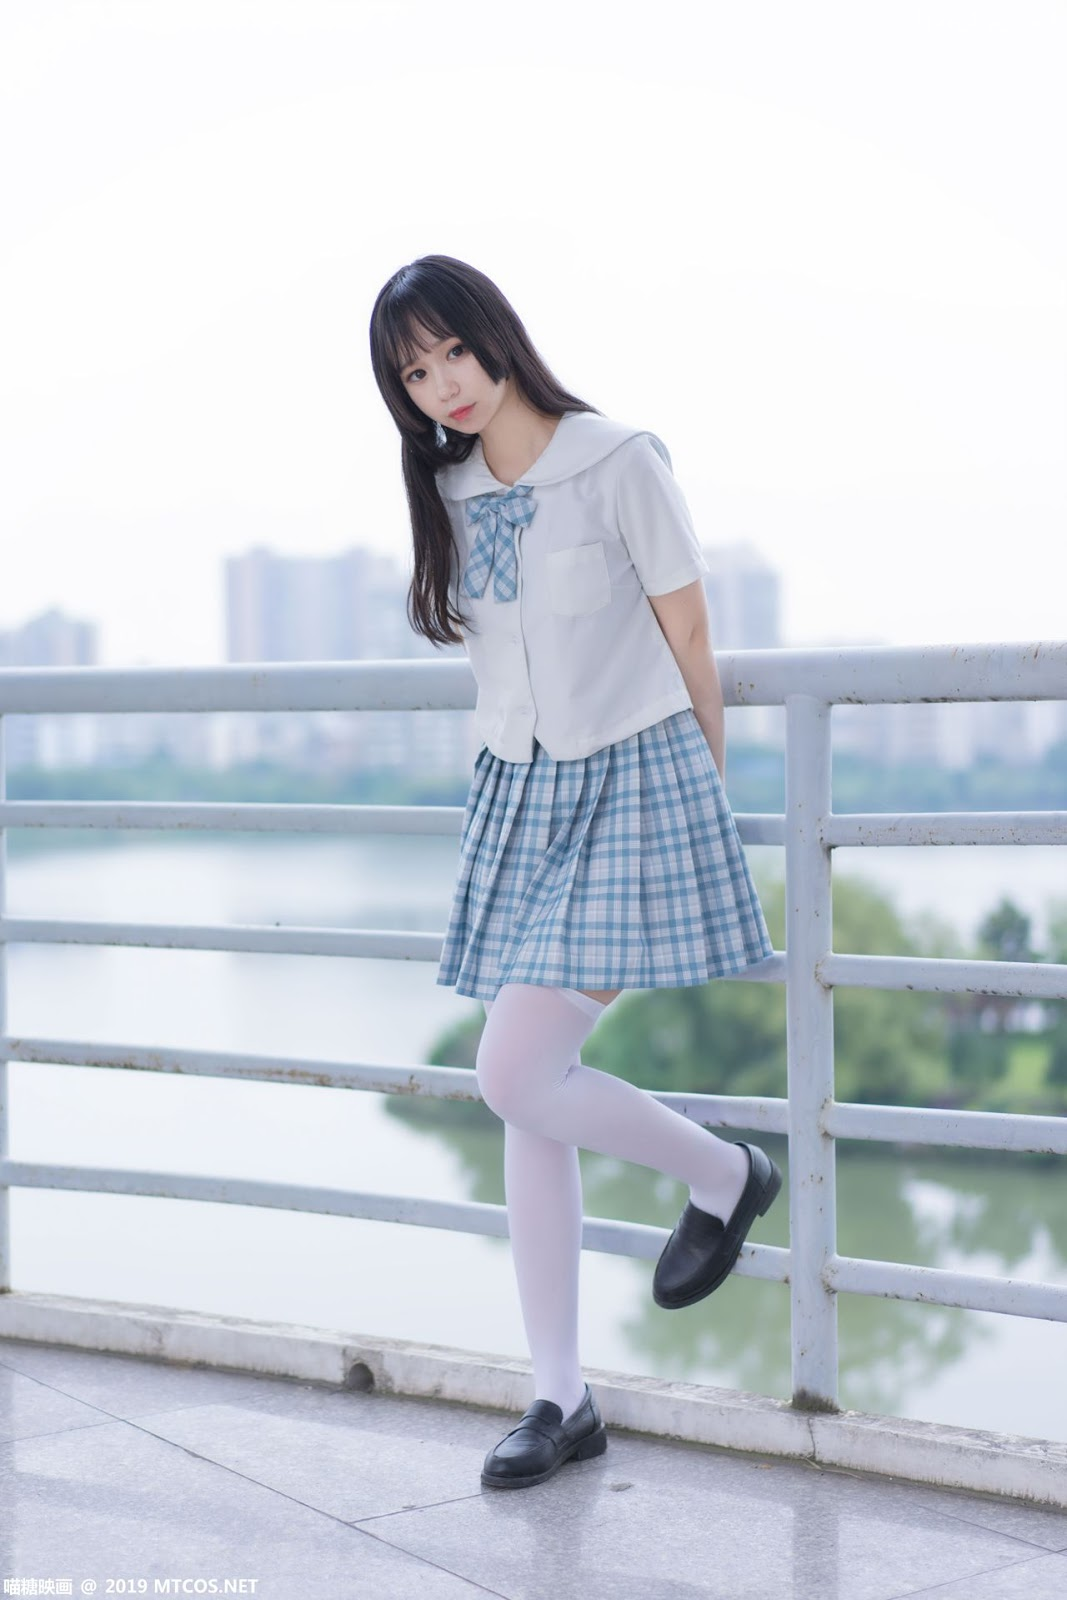 Image [MTCos] 喵糖映画 Vol.015 – Chinese Cute Model - White Shirt and Plaid Skirt - TruePic.net- Picture-7